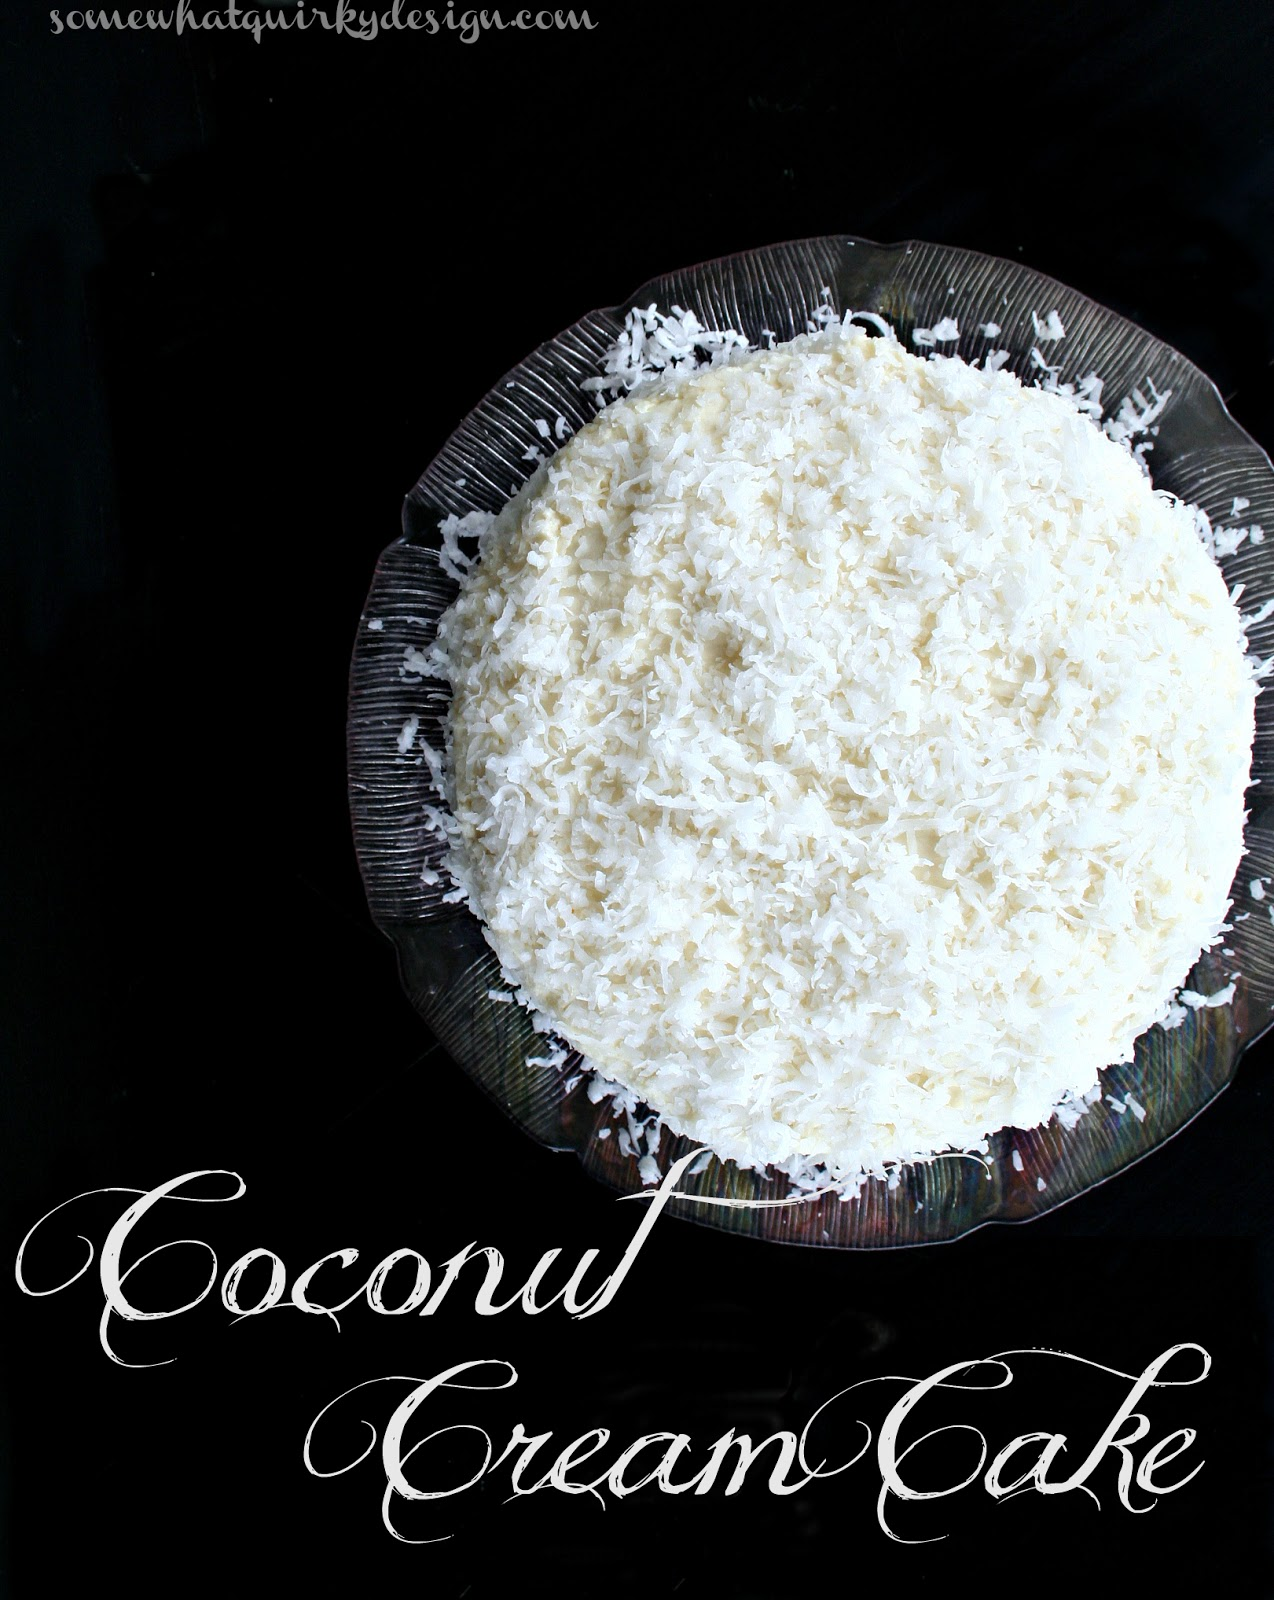 ... . She called it The Ultimate Moist, Fluffy, Ridiculous Coconut Cake